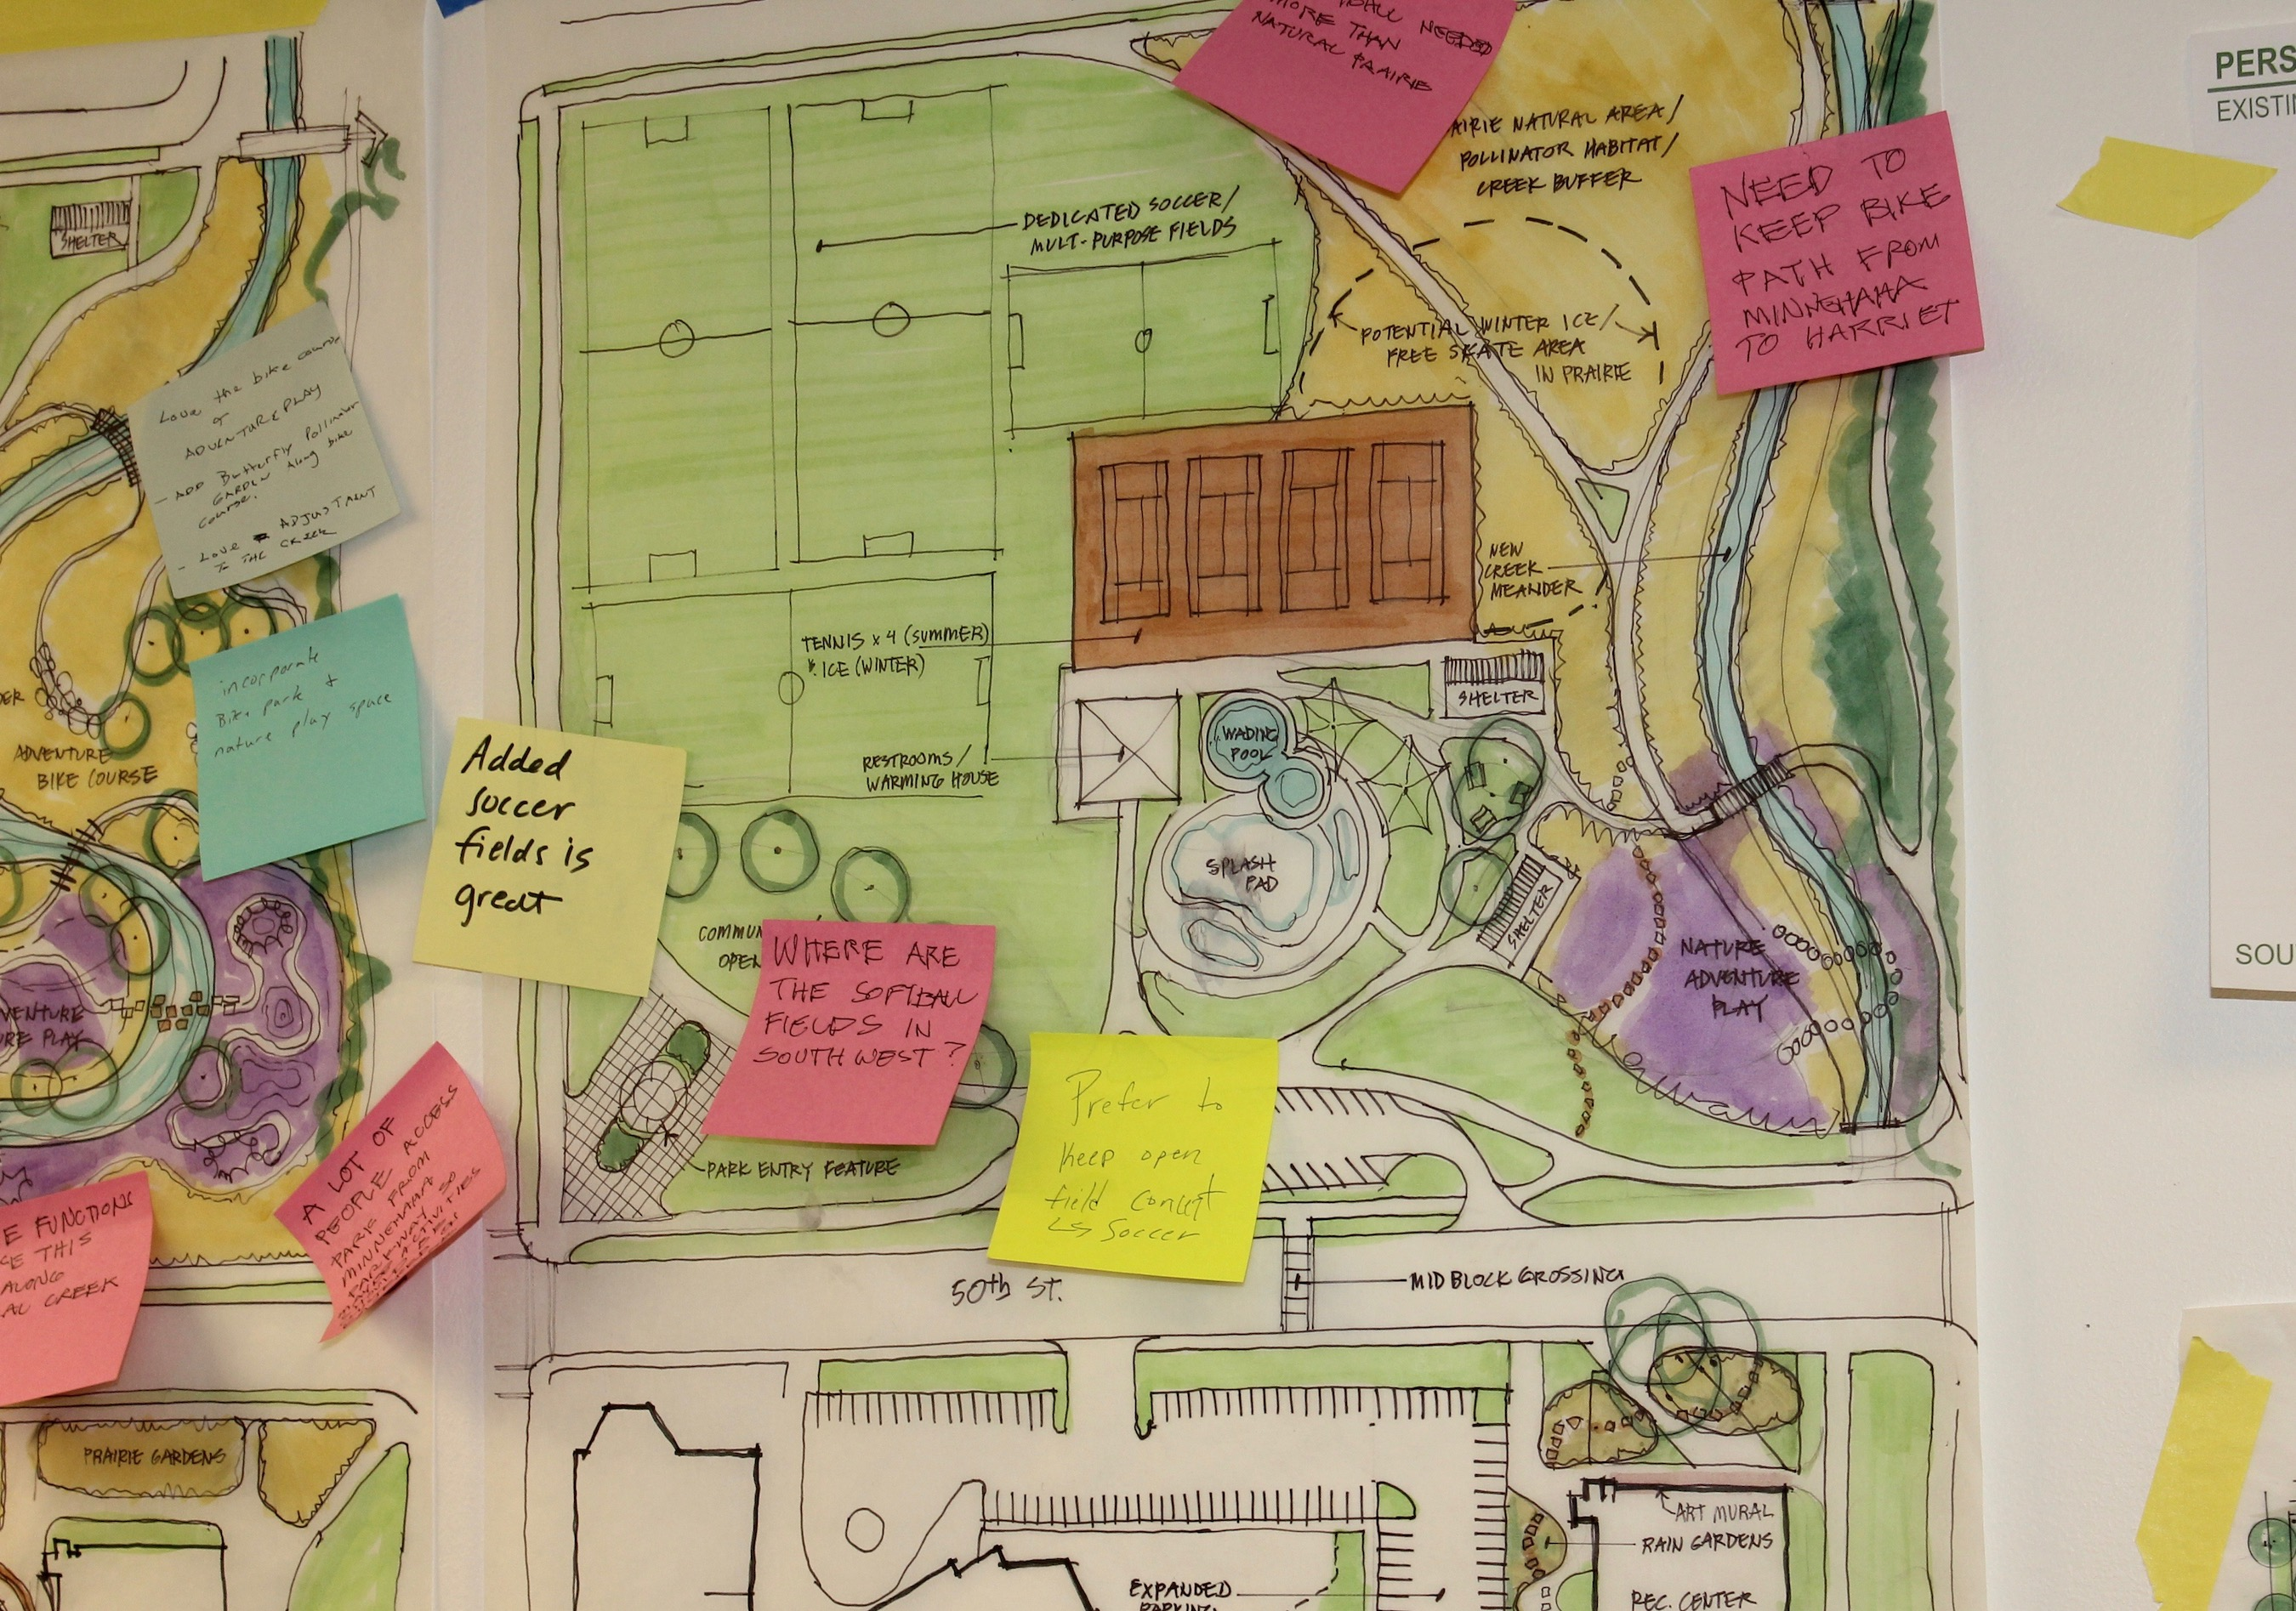 Post-it notes left by residents who came to the Southwest Area Master Plan open house on Nov. 15 give feedback to planners working on the future of neighborhood parks. Photo by Andrew Hazzard.